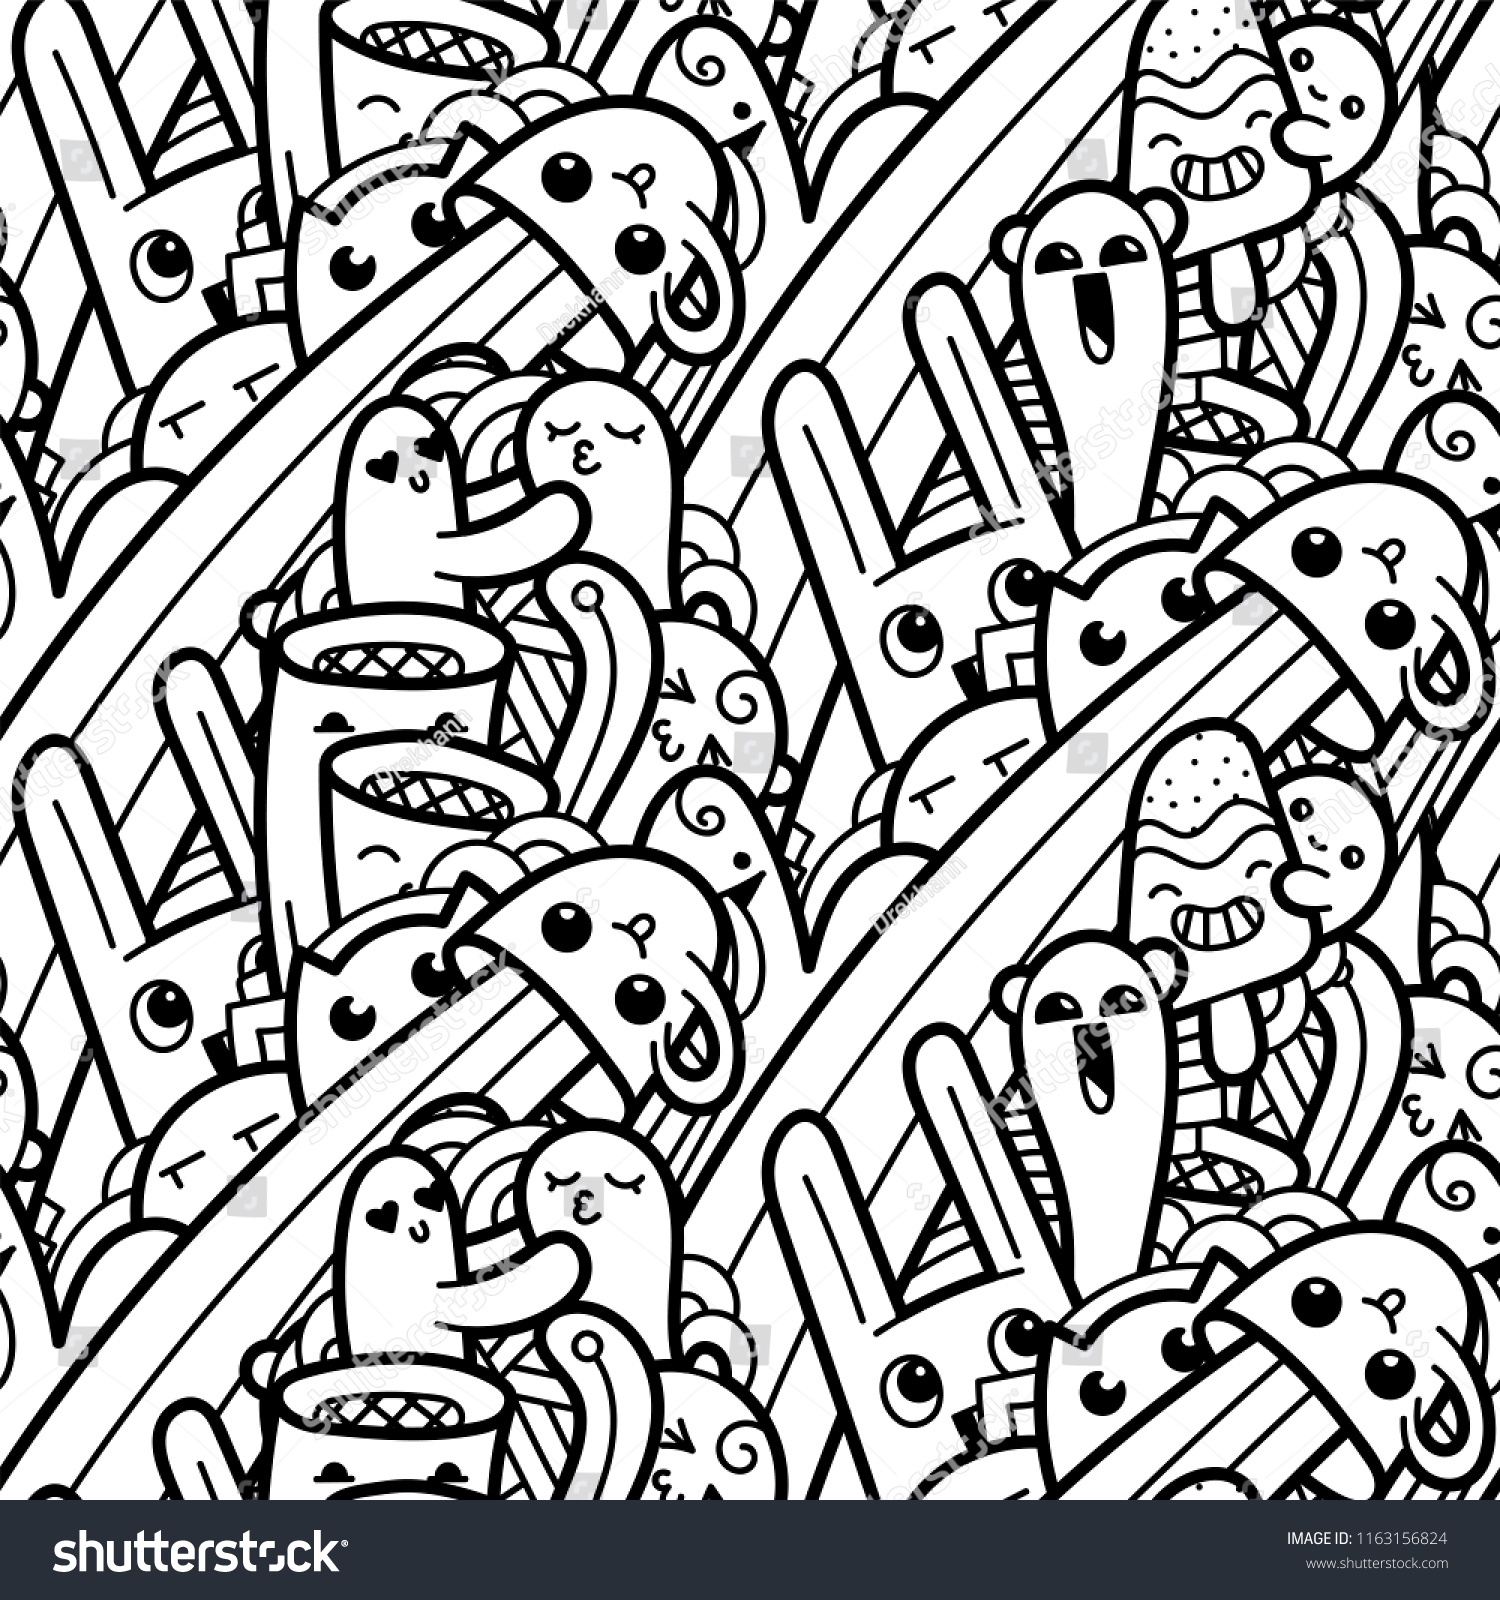 Funny Doodle Monsters Seamless Pattern Prints Stock Vector (Royalty ...